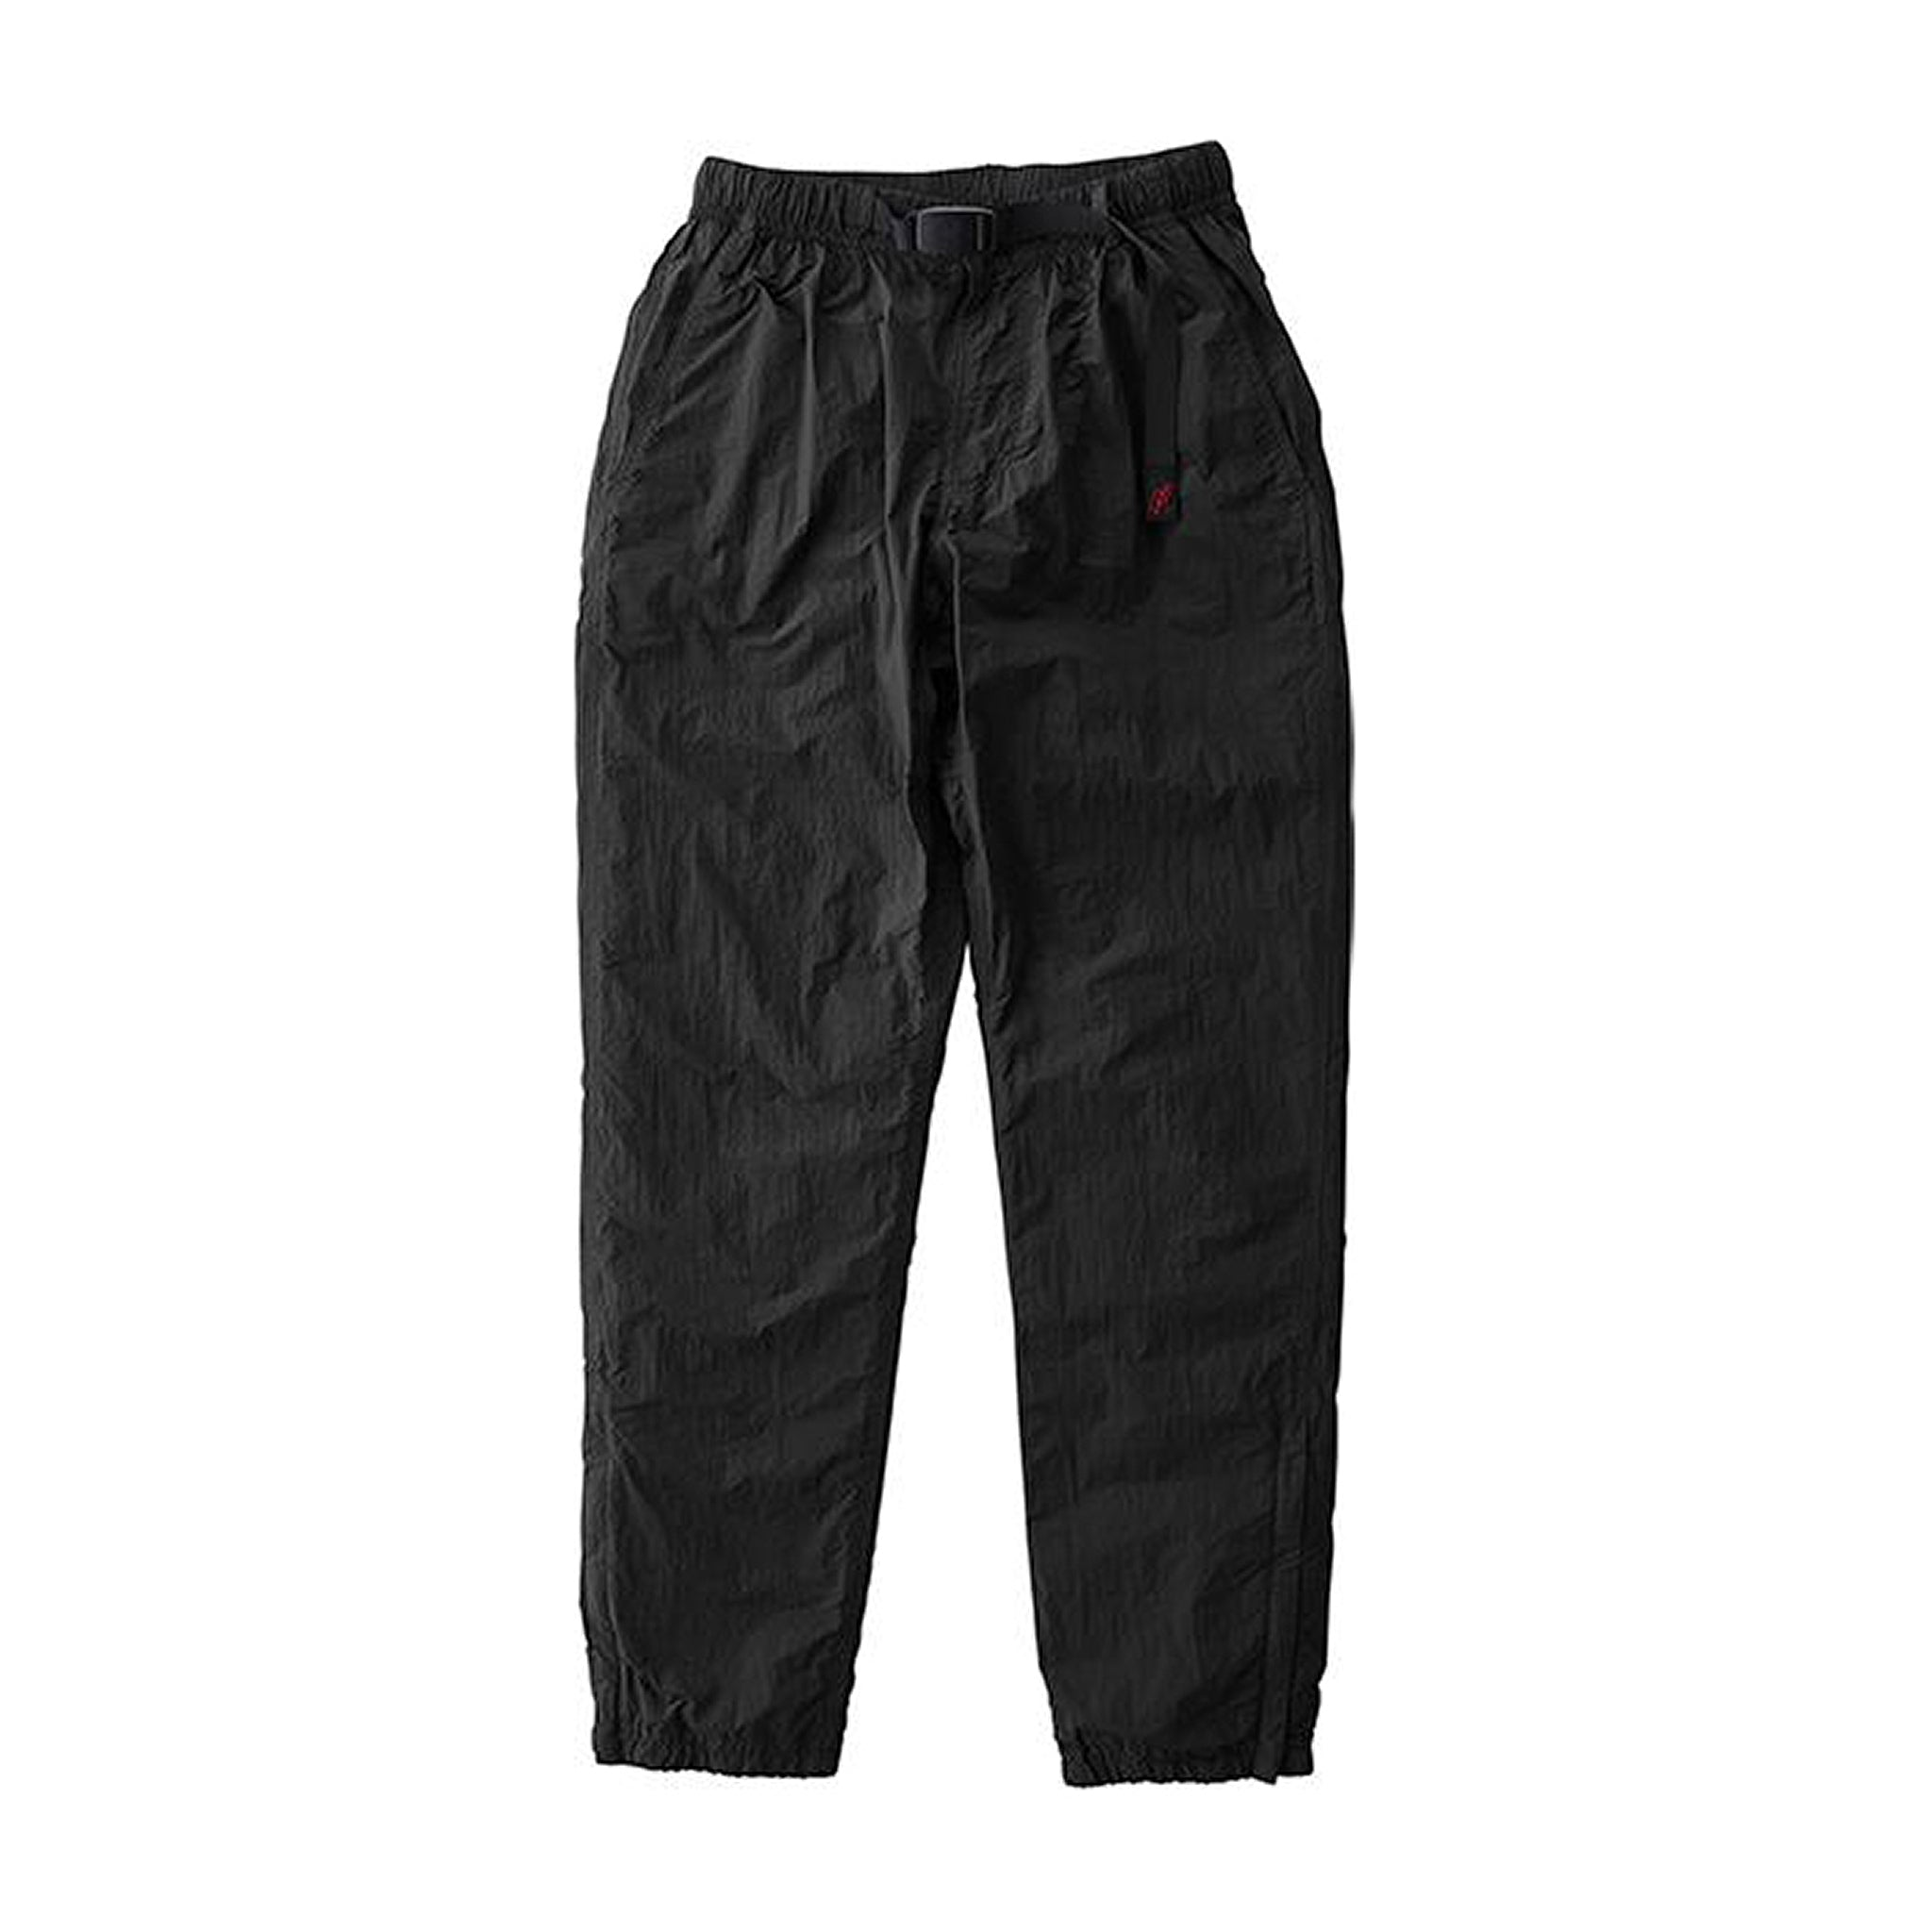 Gramicci Packable Truck Pants Black